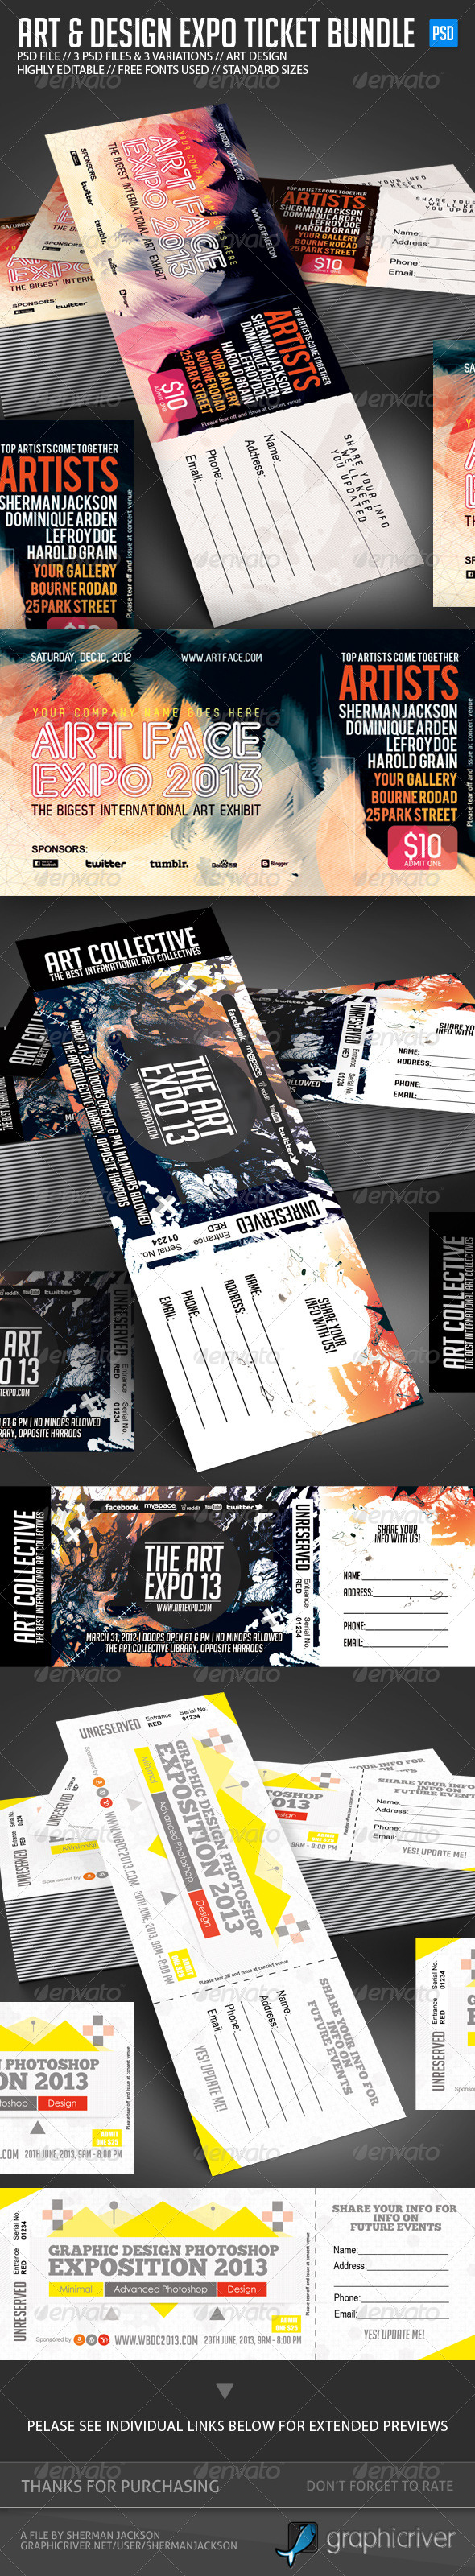 Design & Art Expo Show Passes/Tickets Bundle - Miscellaneous Print Templates